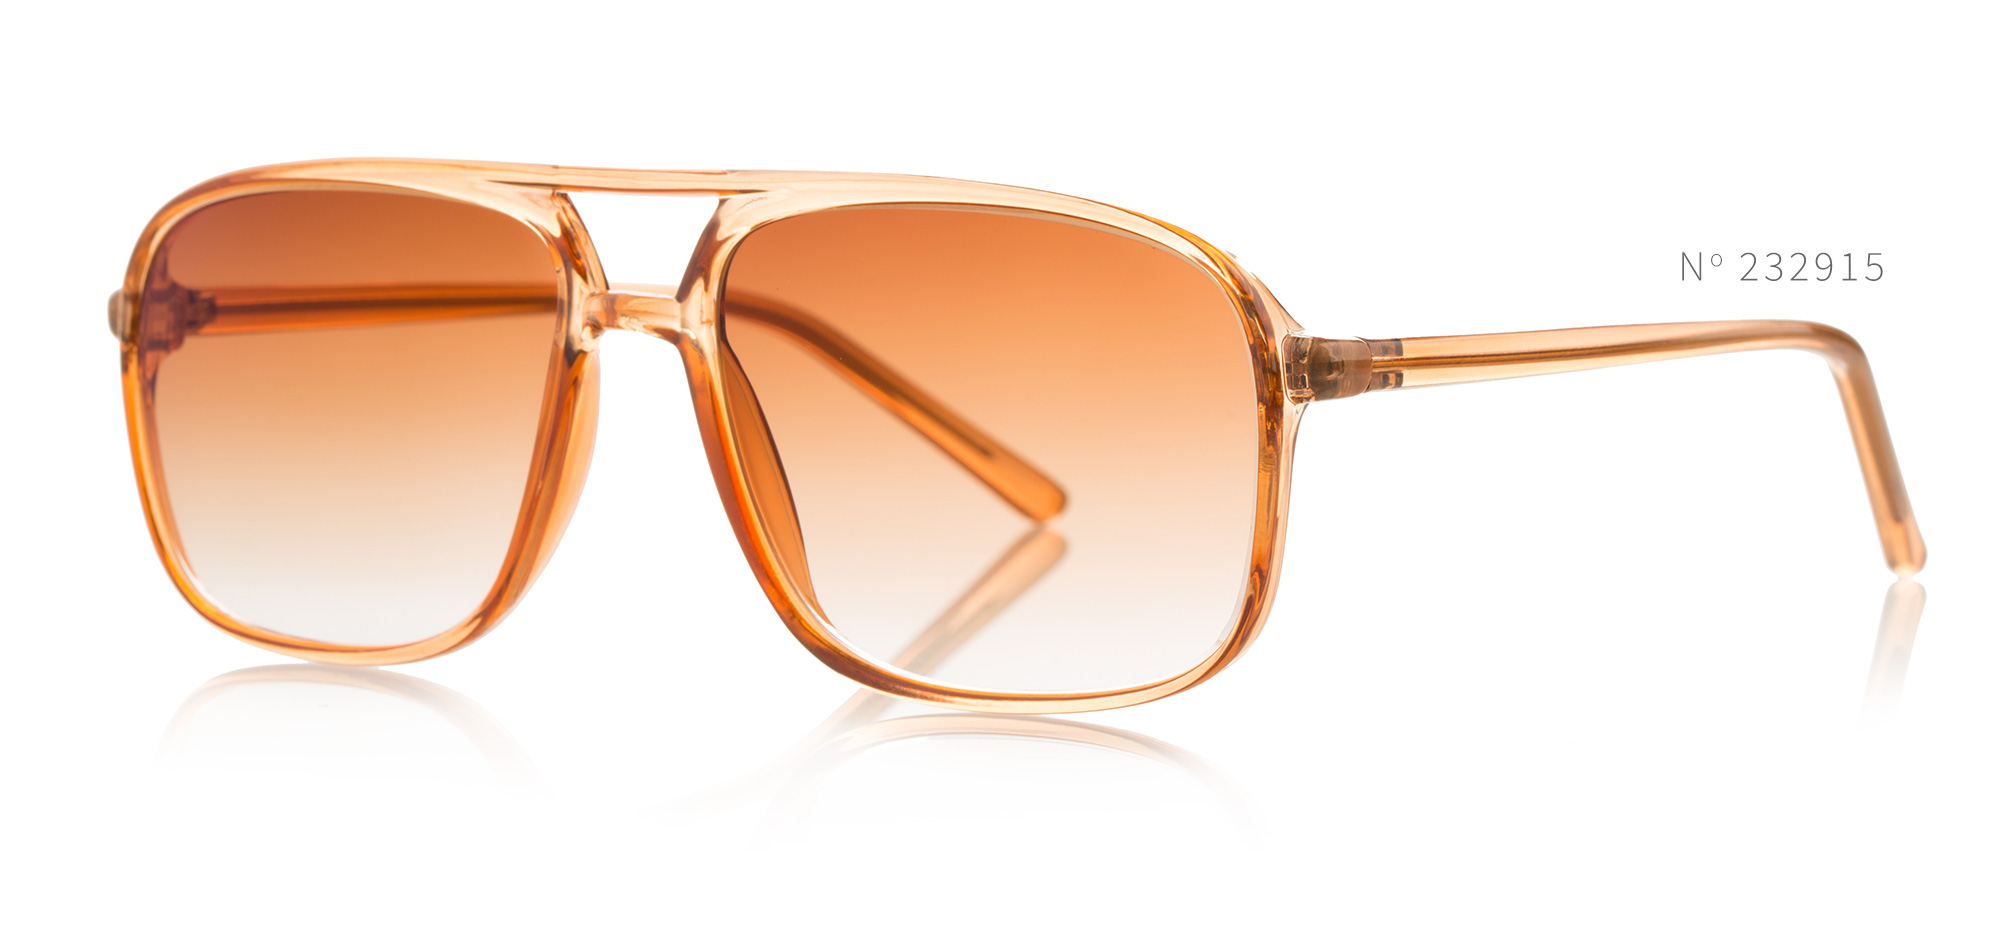 Orange Tinted Sunglasses  a guide to spring 2016 eyewear fashion through the lens